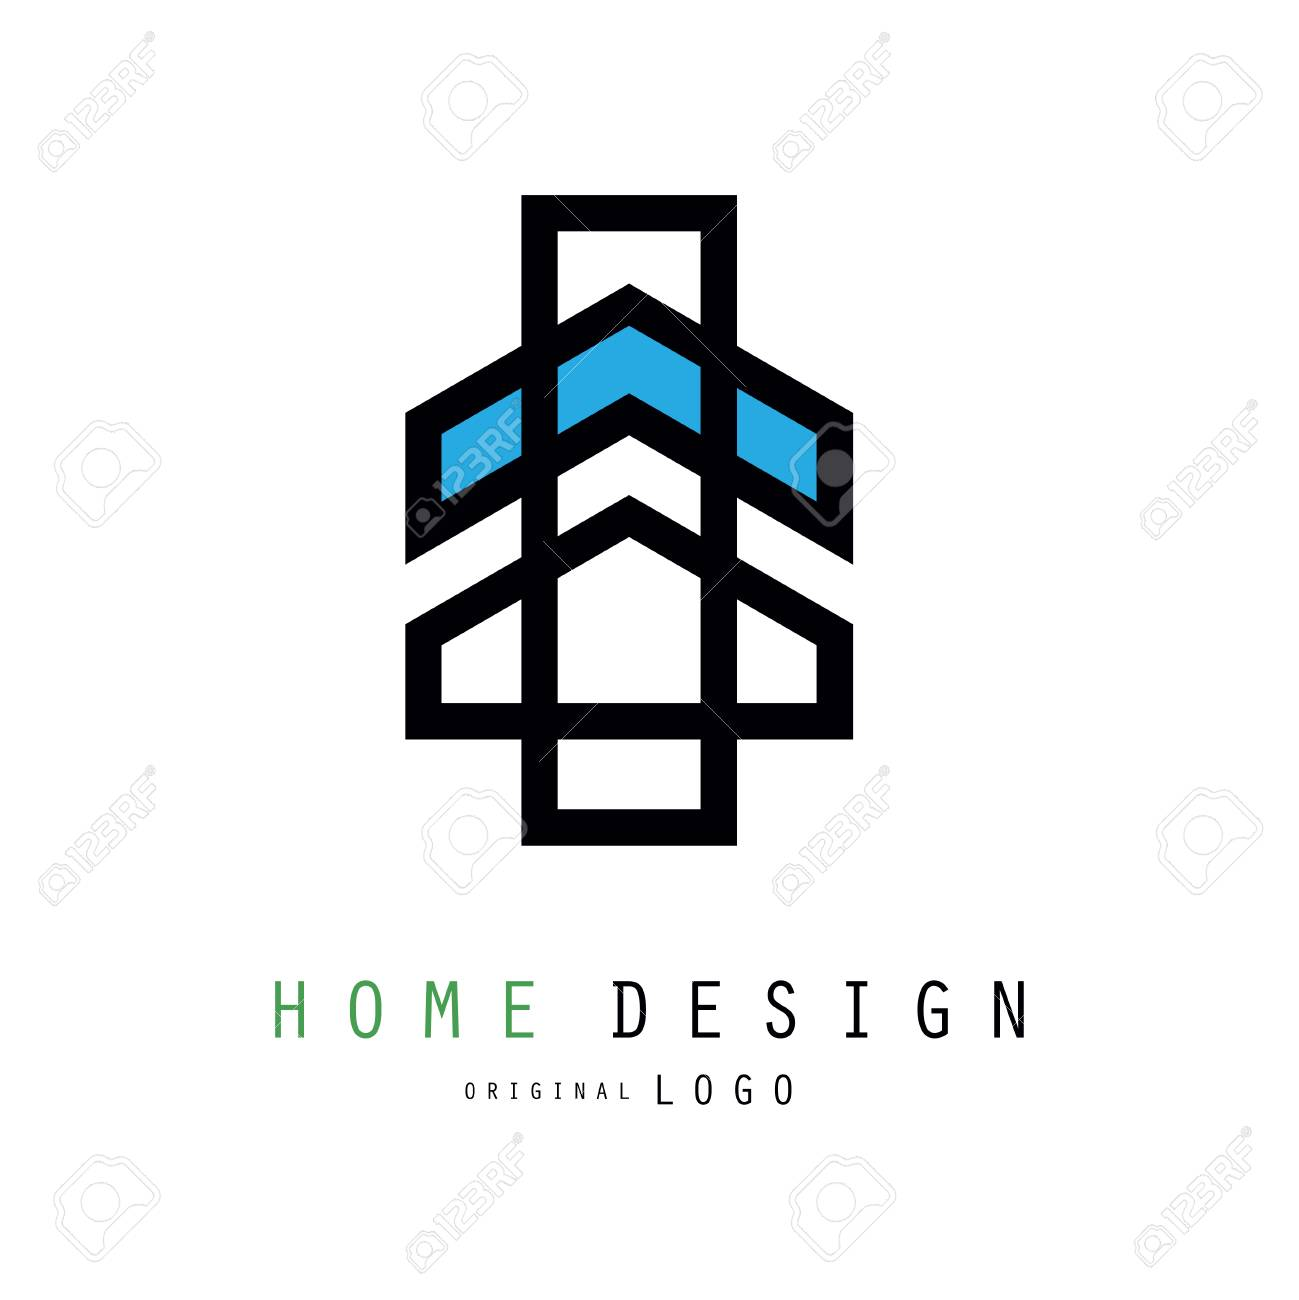 Original Linear Logo For House Design Company Or Business With ...